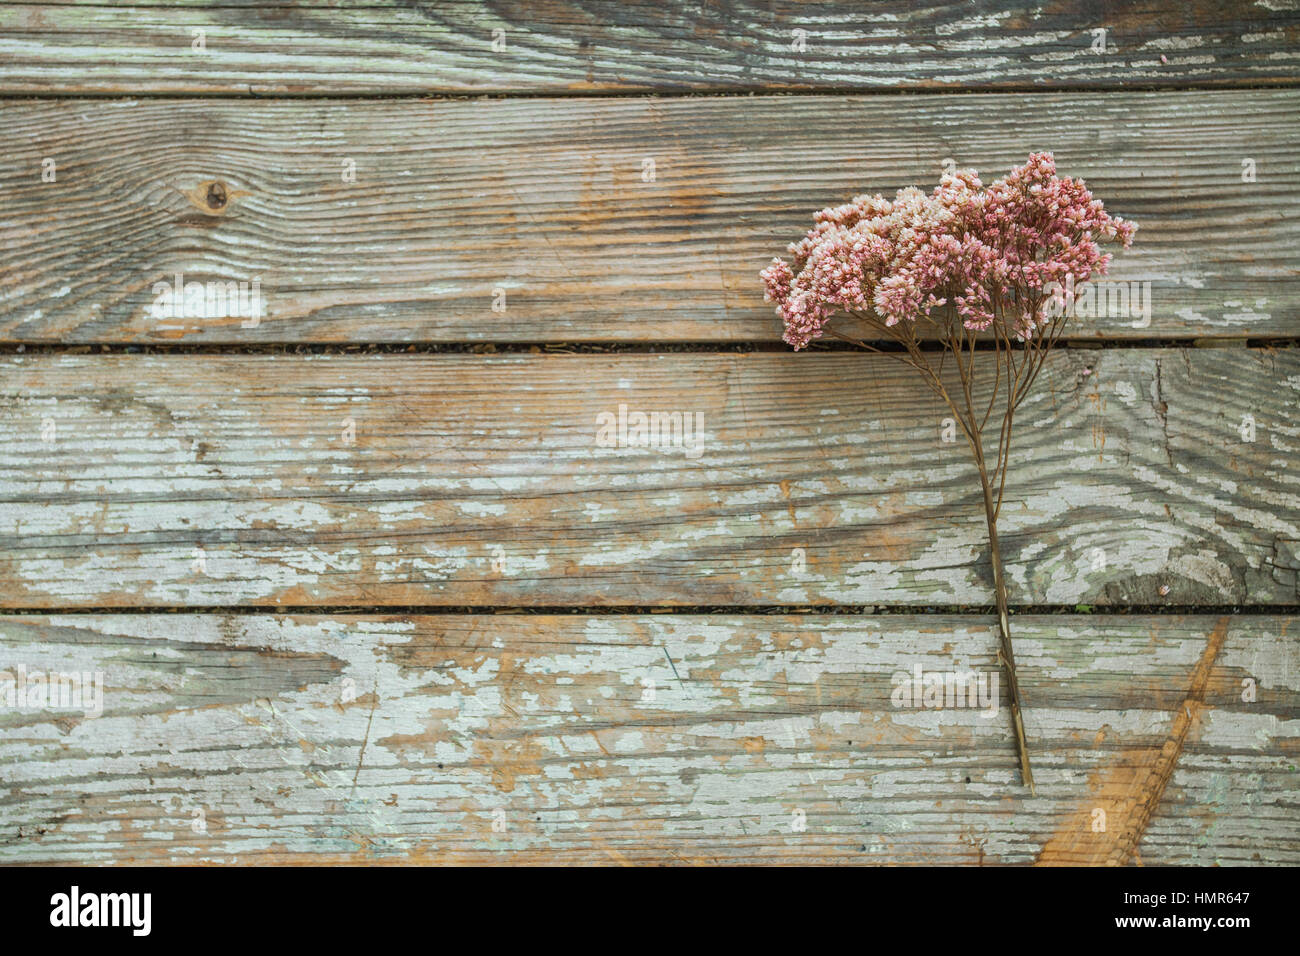 Dry flower heather on wooden background, simplicity, daylight, space around - Stock Image